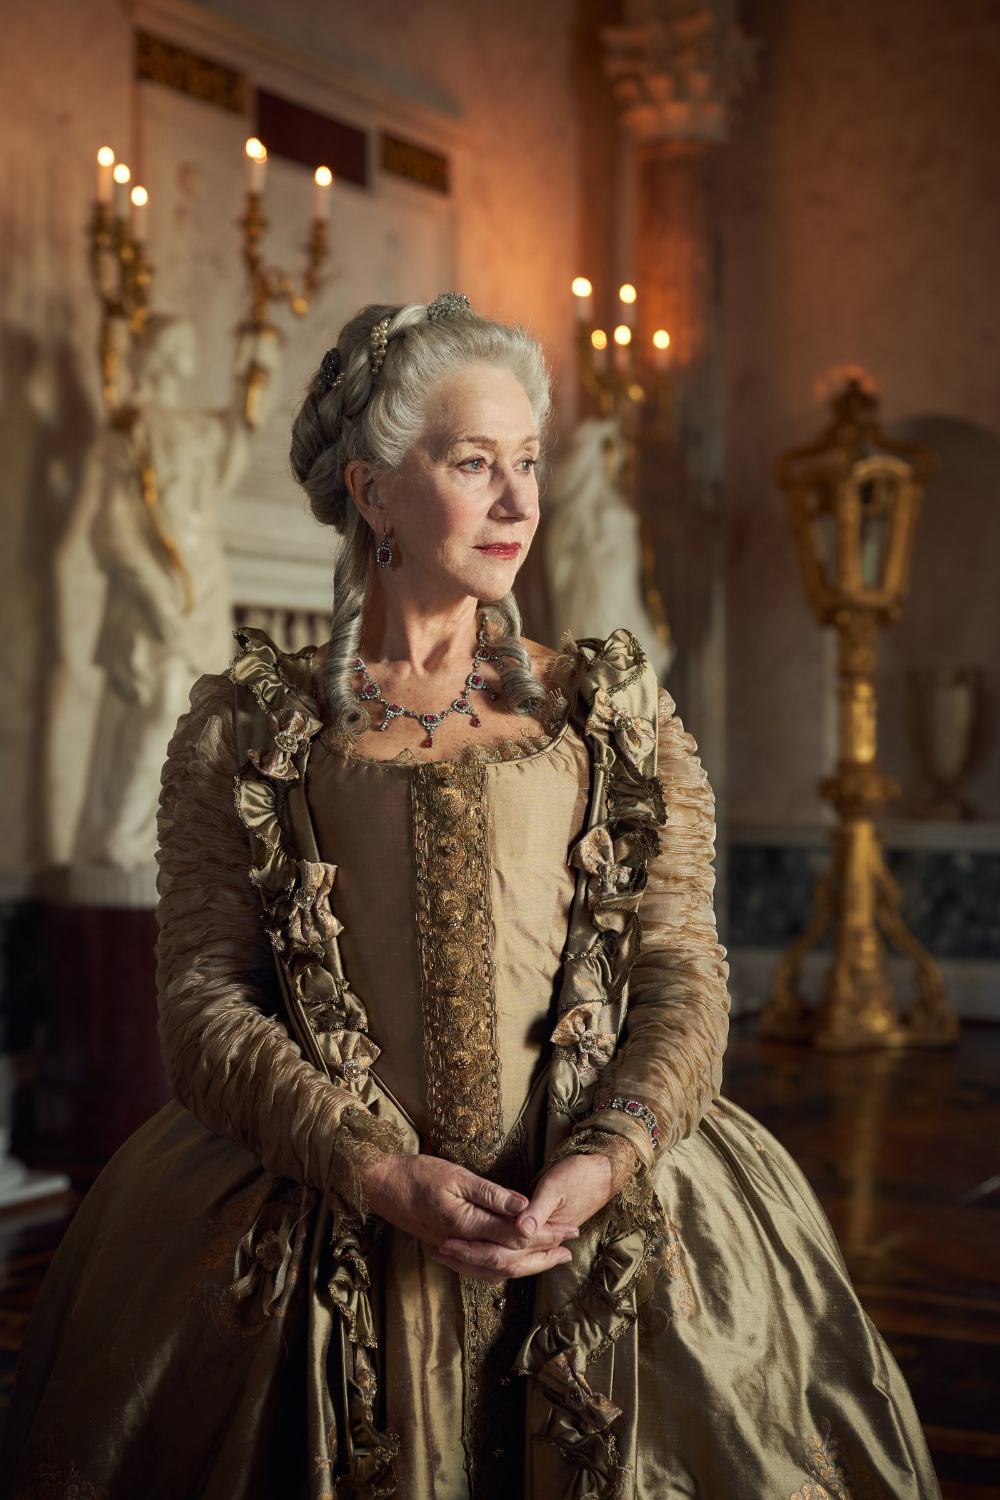 Helen Mirren On Catherine The Great The Good Liar And Equality In Hollywood Catherine The Great Helen Mirren Fantasy Dress